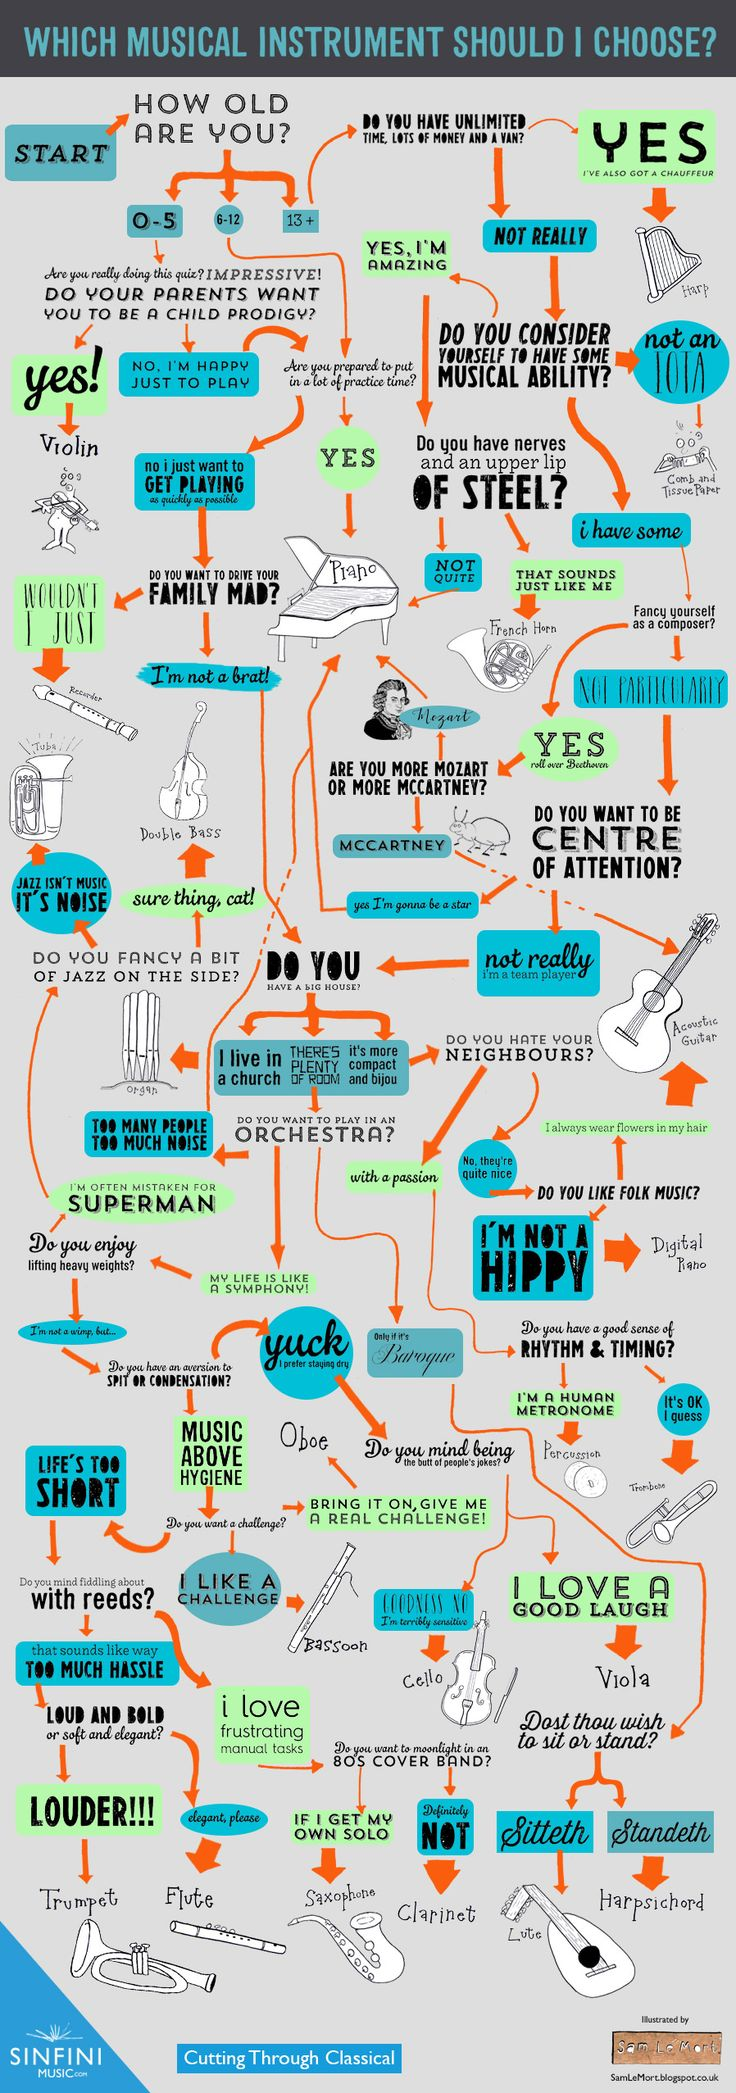 What instrument should you play?